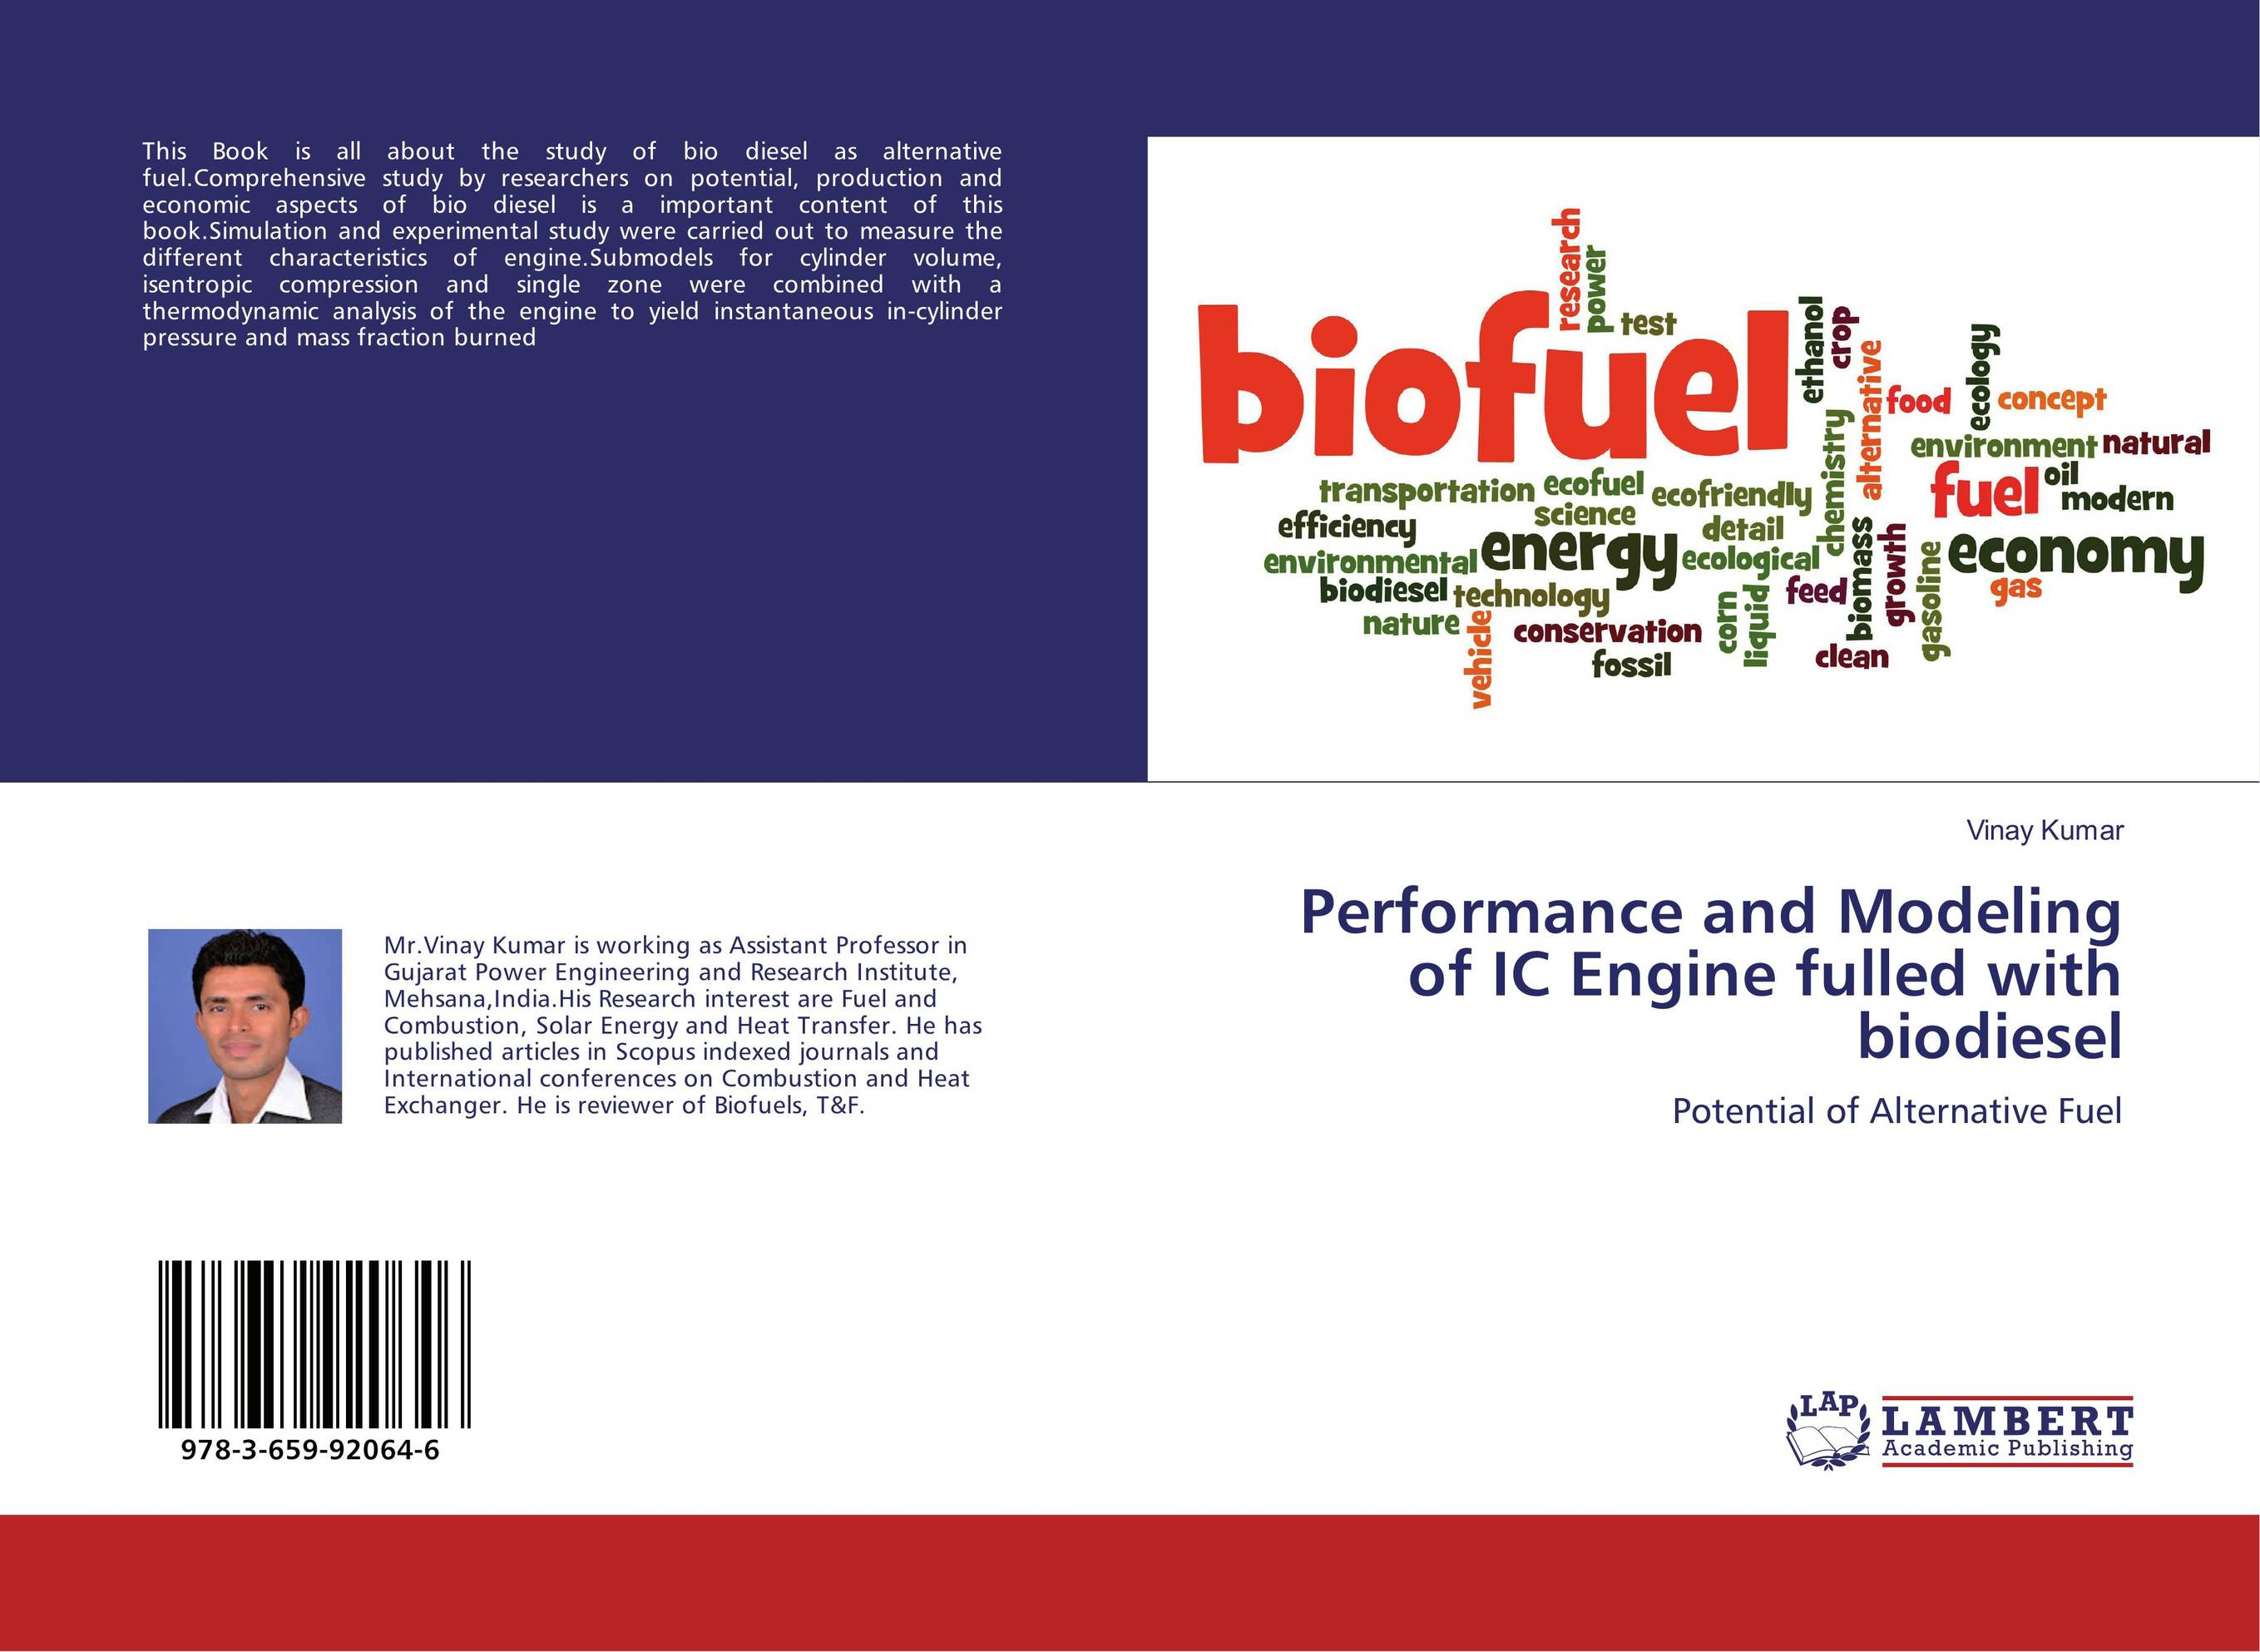 lotus car rental alternative fuel assessment essay Articles with research paper on alternative fuel sources tag: with the advantages of these alternative fuel sources, there come disadvantages this paper presents an feasibility study regarding the use of alternative fuel vehicles for the lotus rental car company 28-8-2018 how to start a research paper.